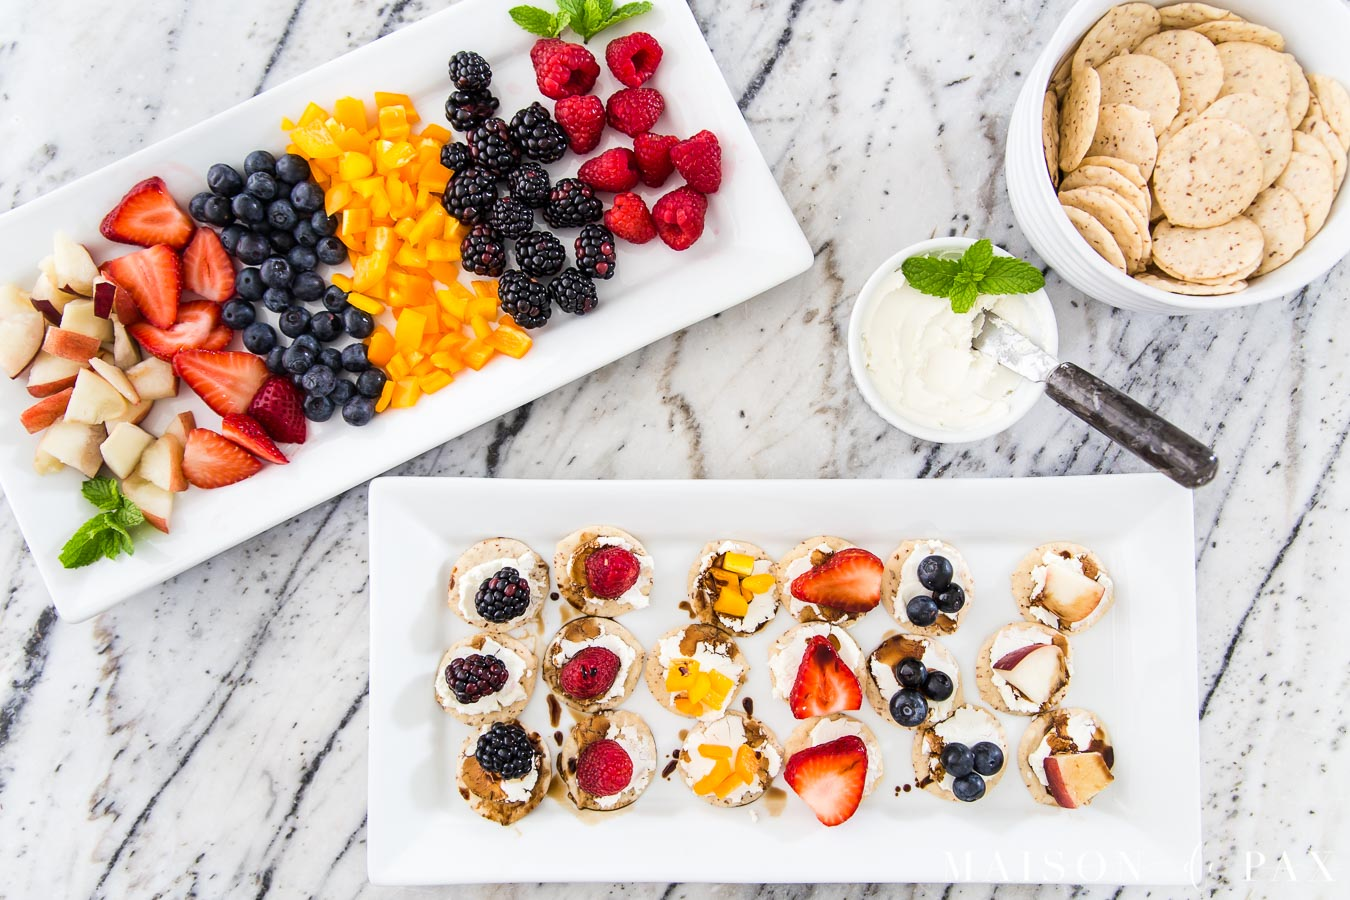 beautiful goat cheese and fruit charcuterie board | Maison de Pax